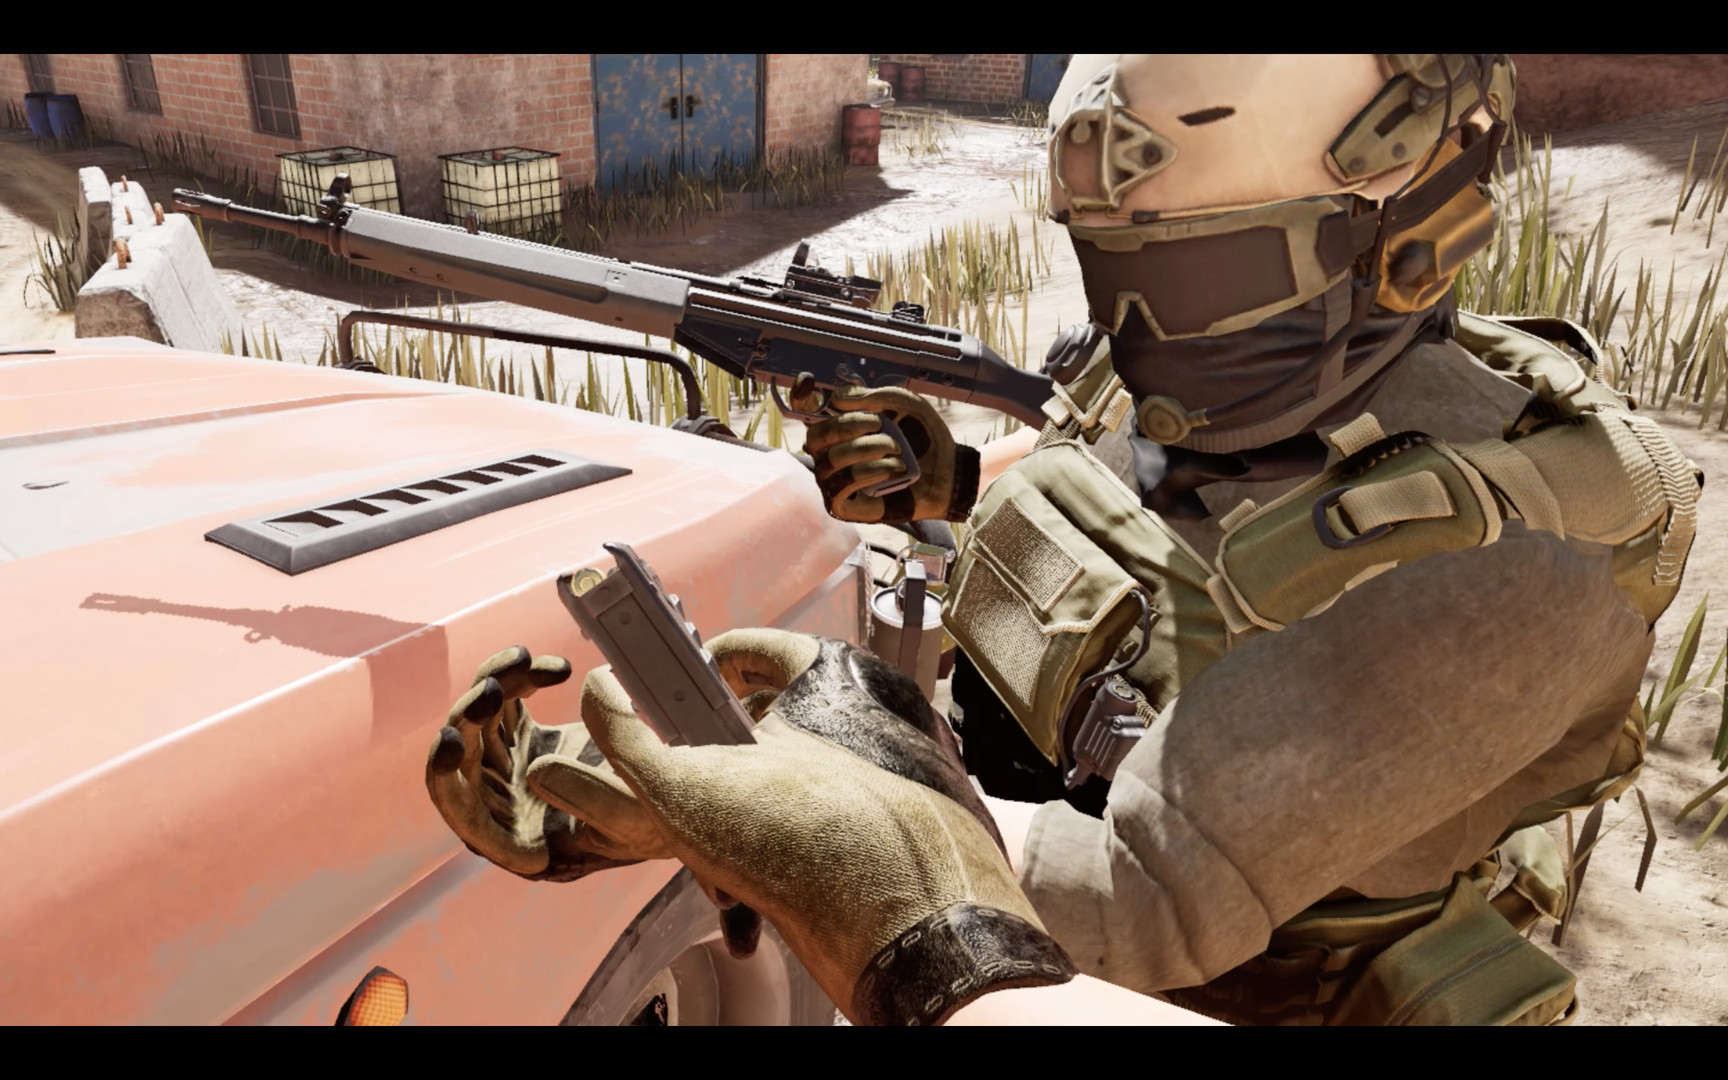 contractors vr fps featured image shooter call of duty